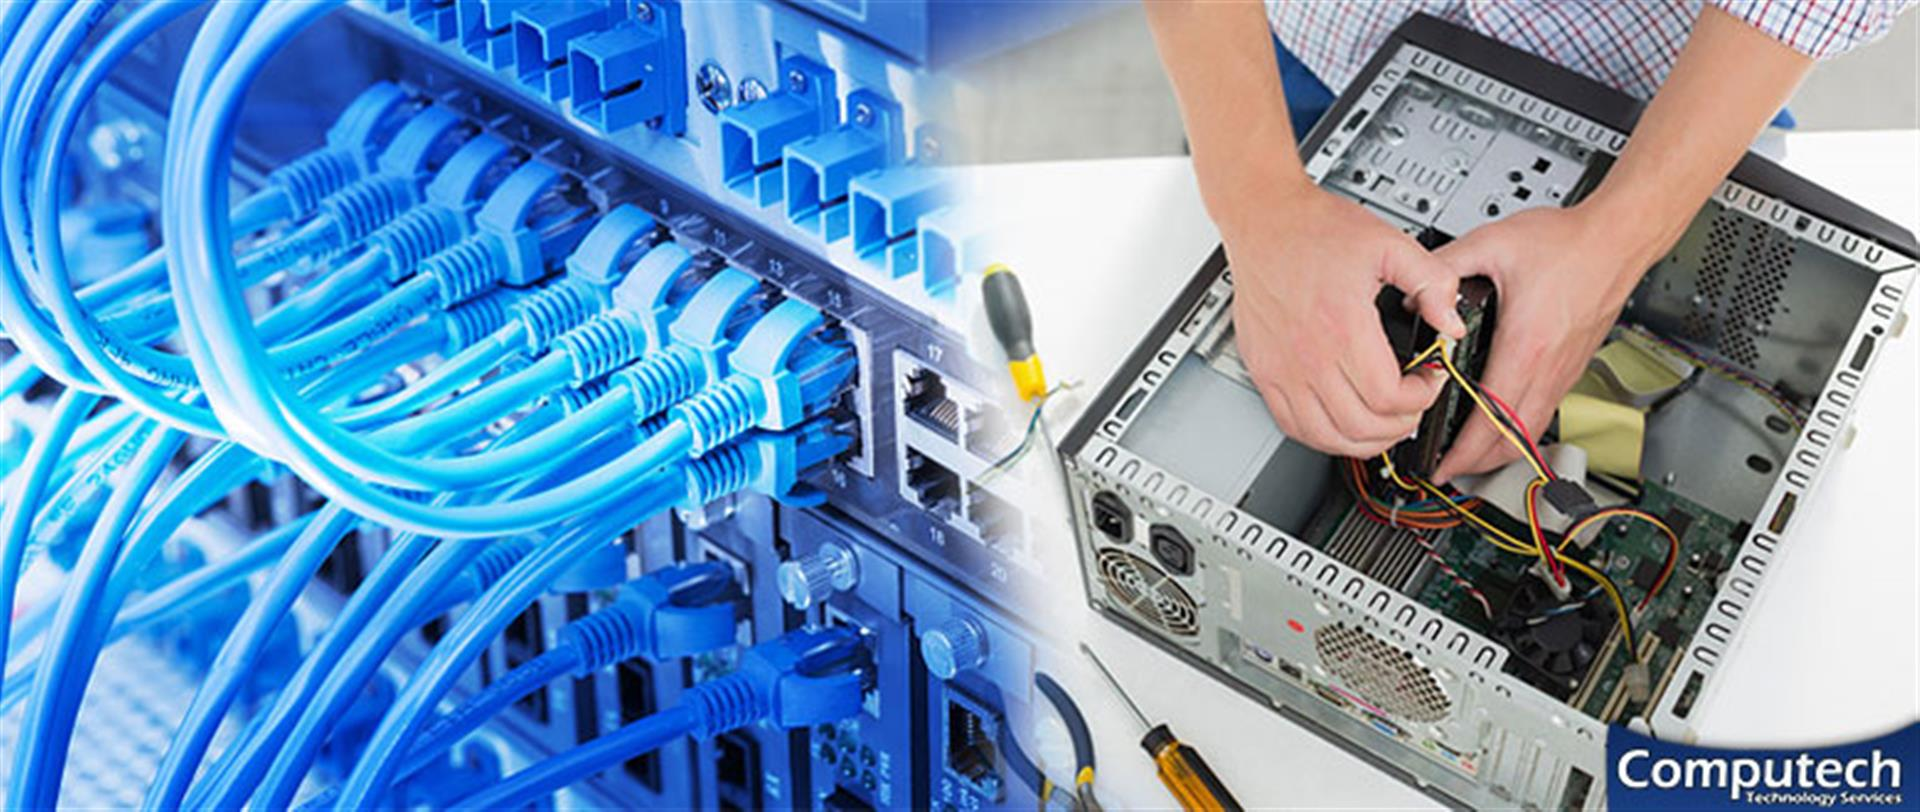 Cusseta Georgia On Site Computer PC & Printer Repair, Networks, Voice & Data Cabling Solutions